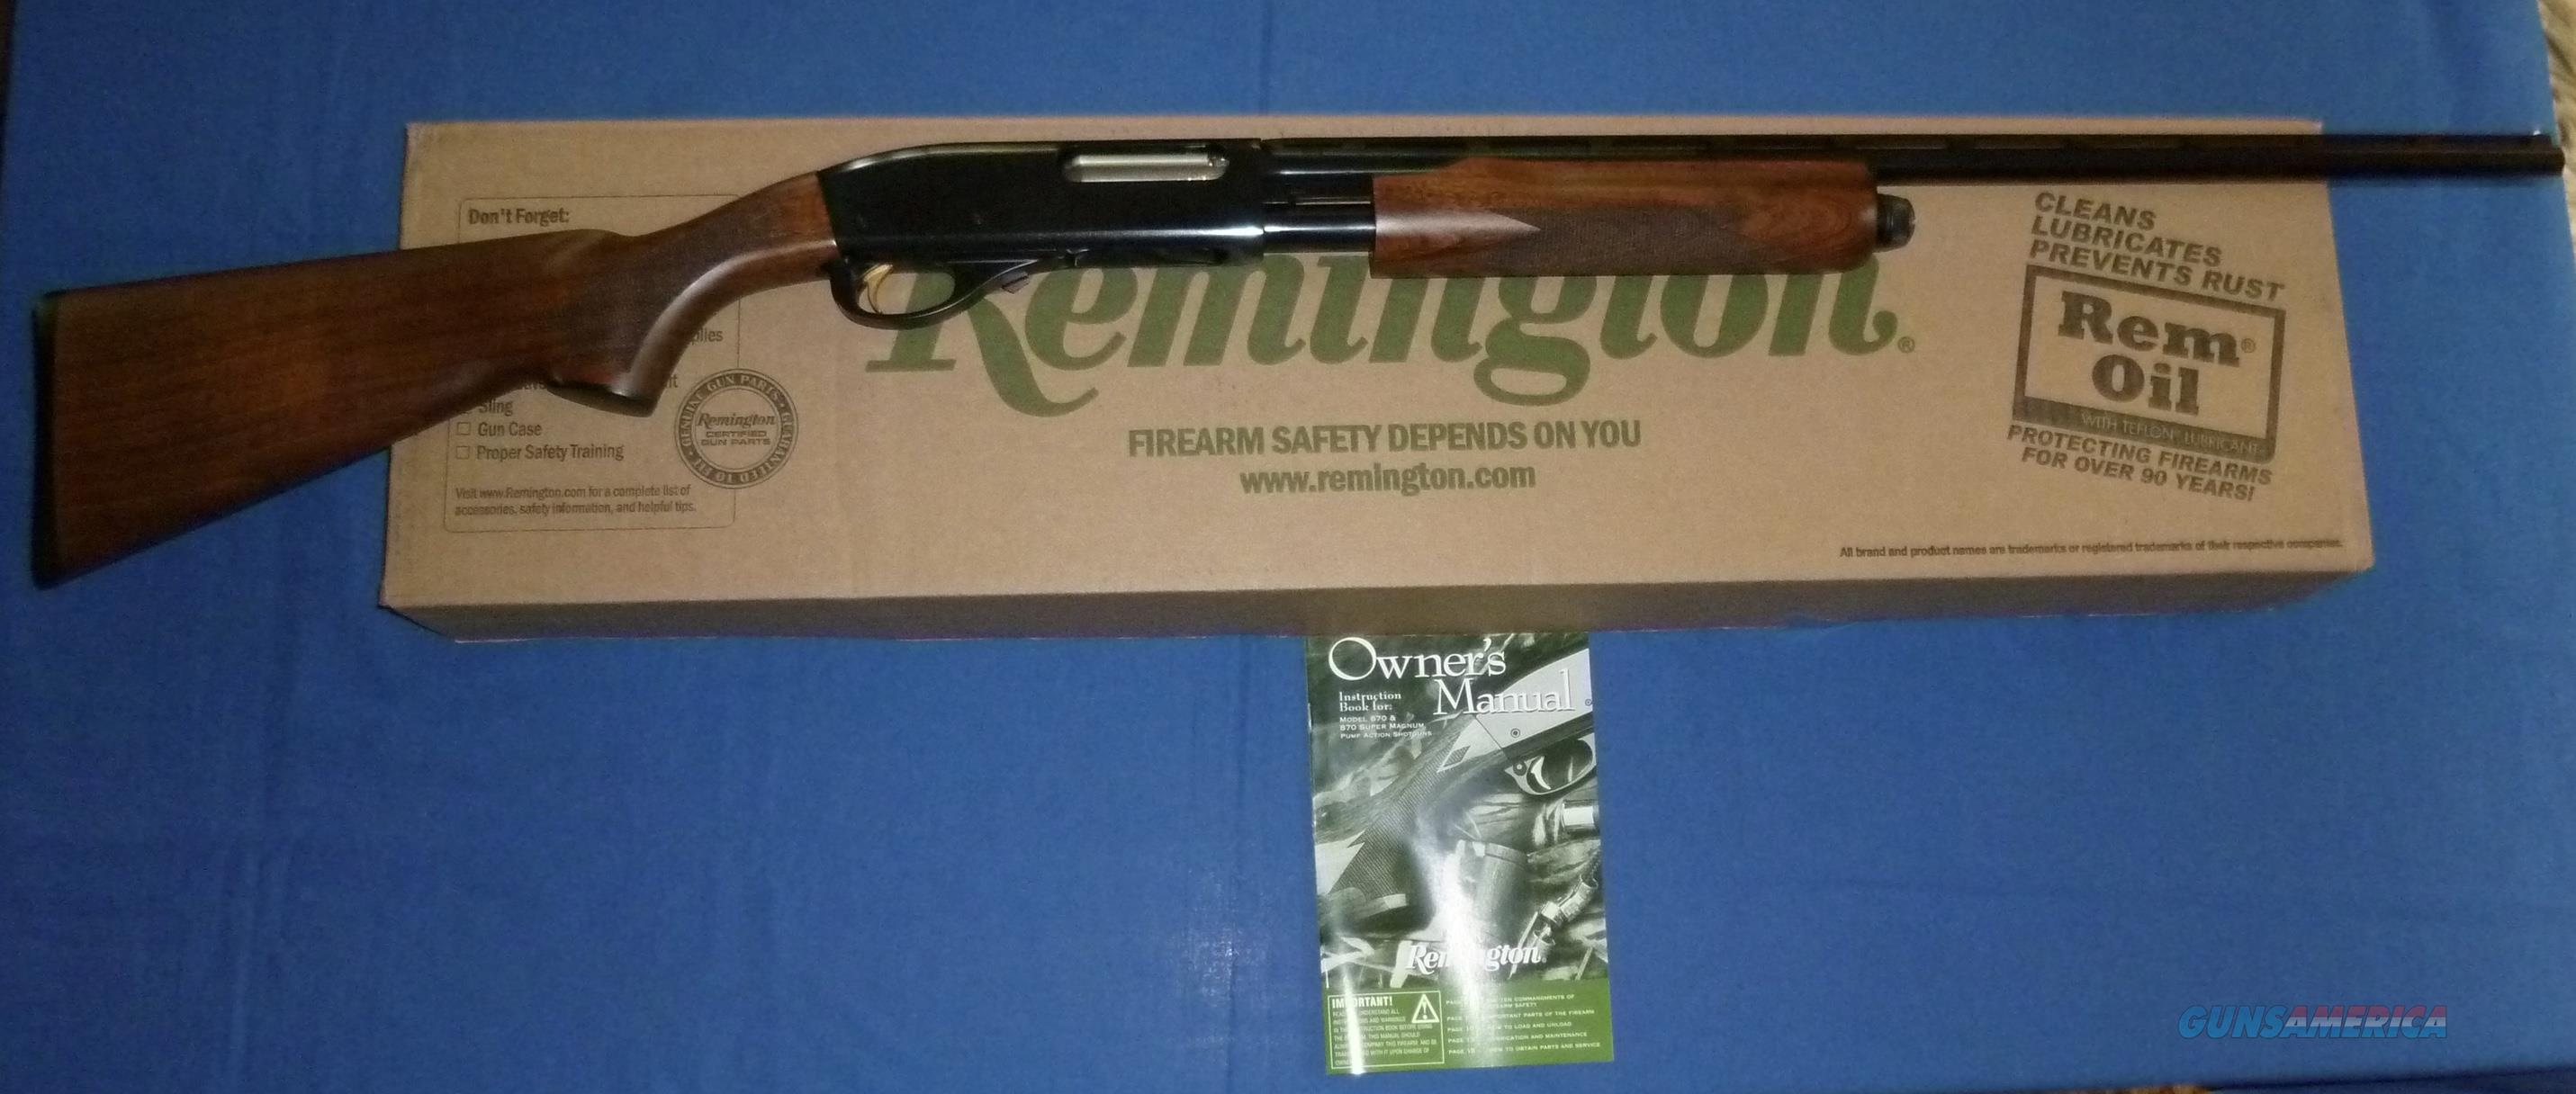 REMINGTON 870 WINGMASTER 28 GAUGE PUMP SHOTGUN  Guns > Shotguns > Remington Shotguns  > Pump > Hunting